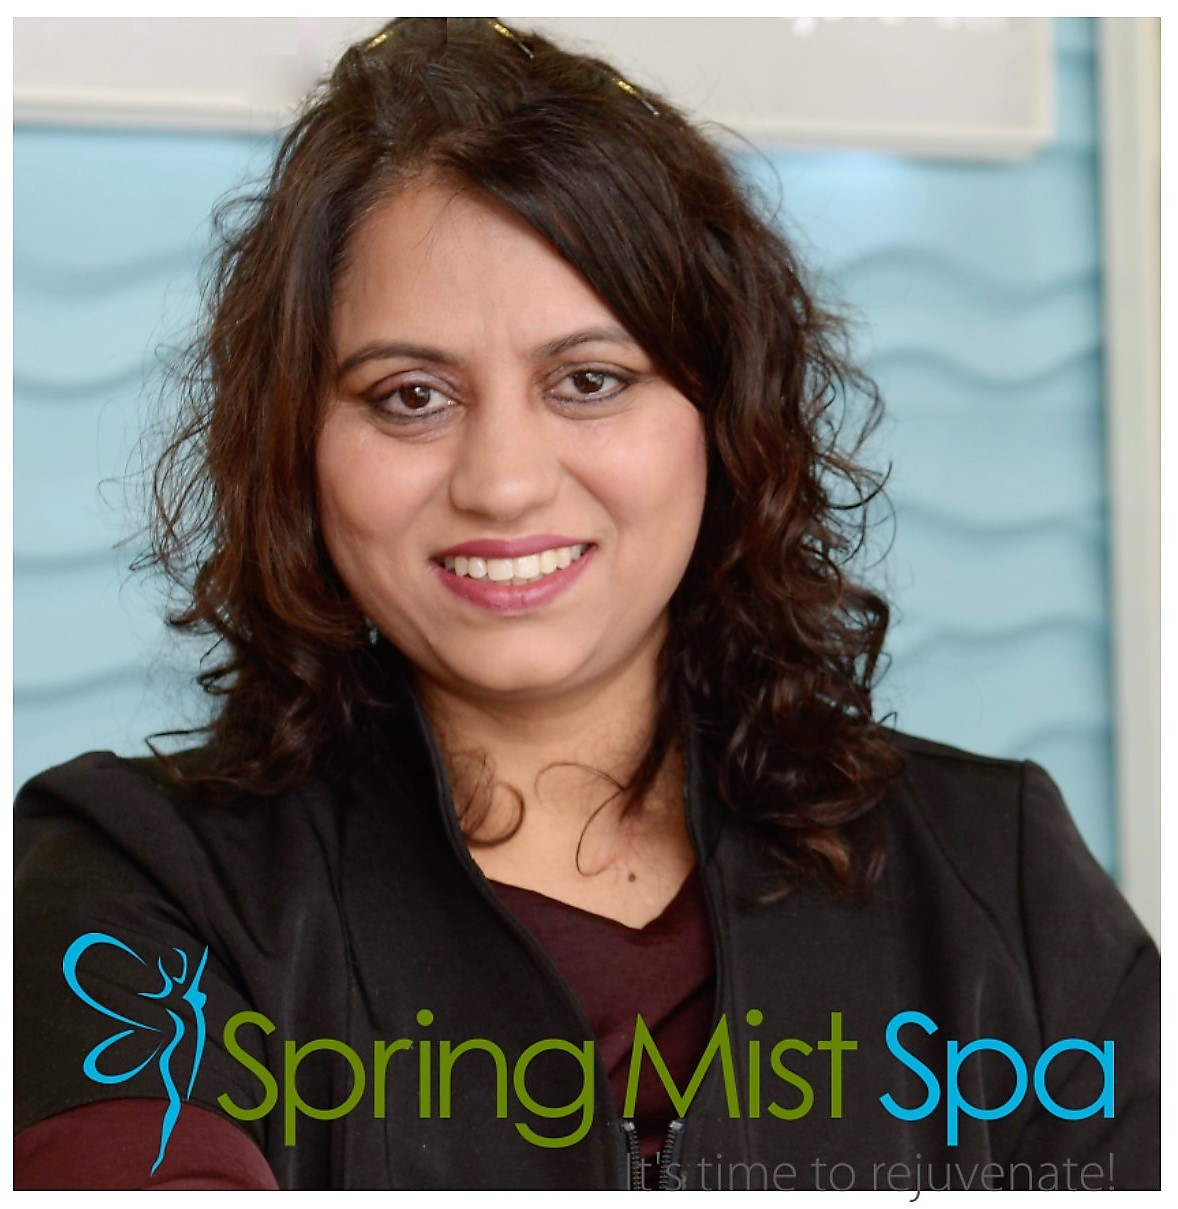 Spring Mist Spa Milton blog post: Summer Skin Care